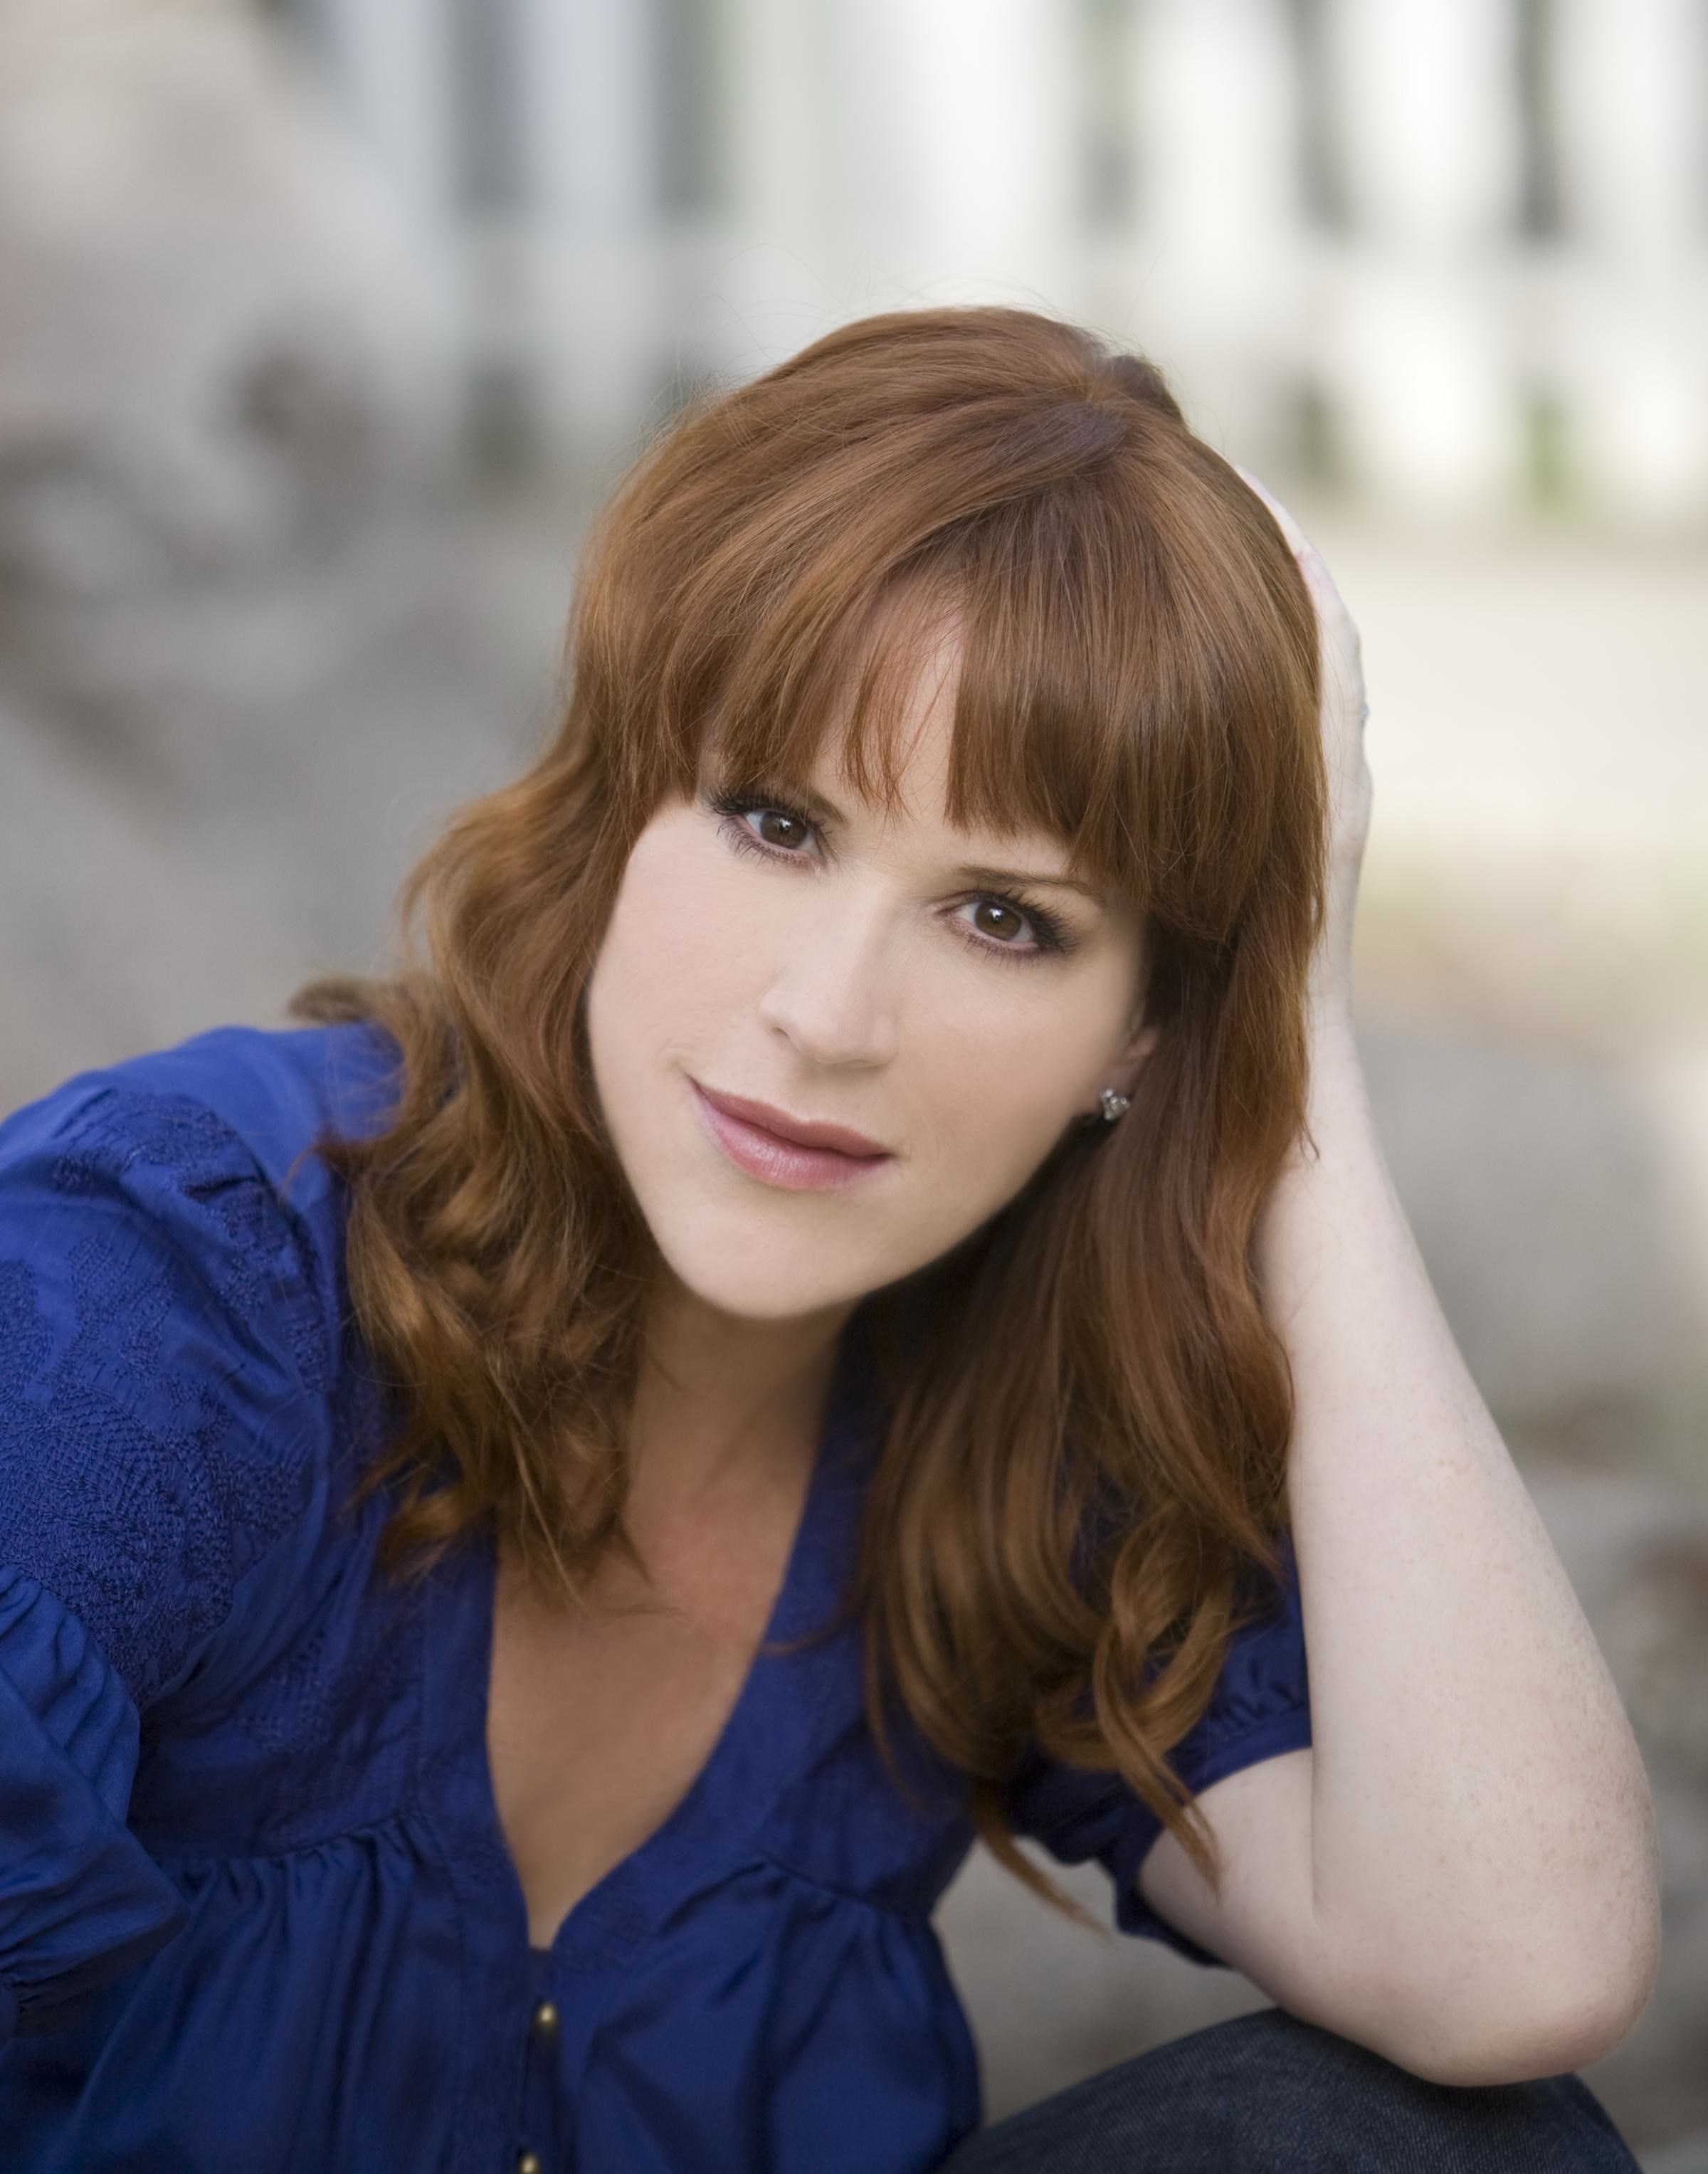 Molly Ringwald | Known people - famous people news and ...